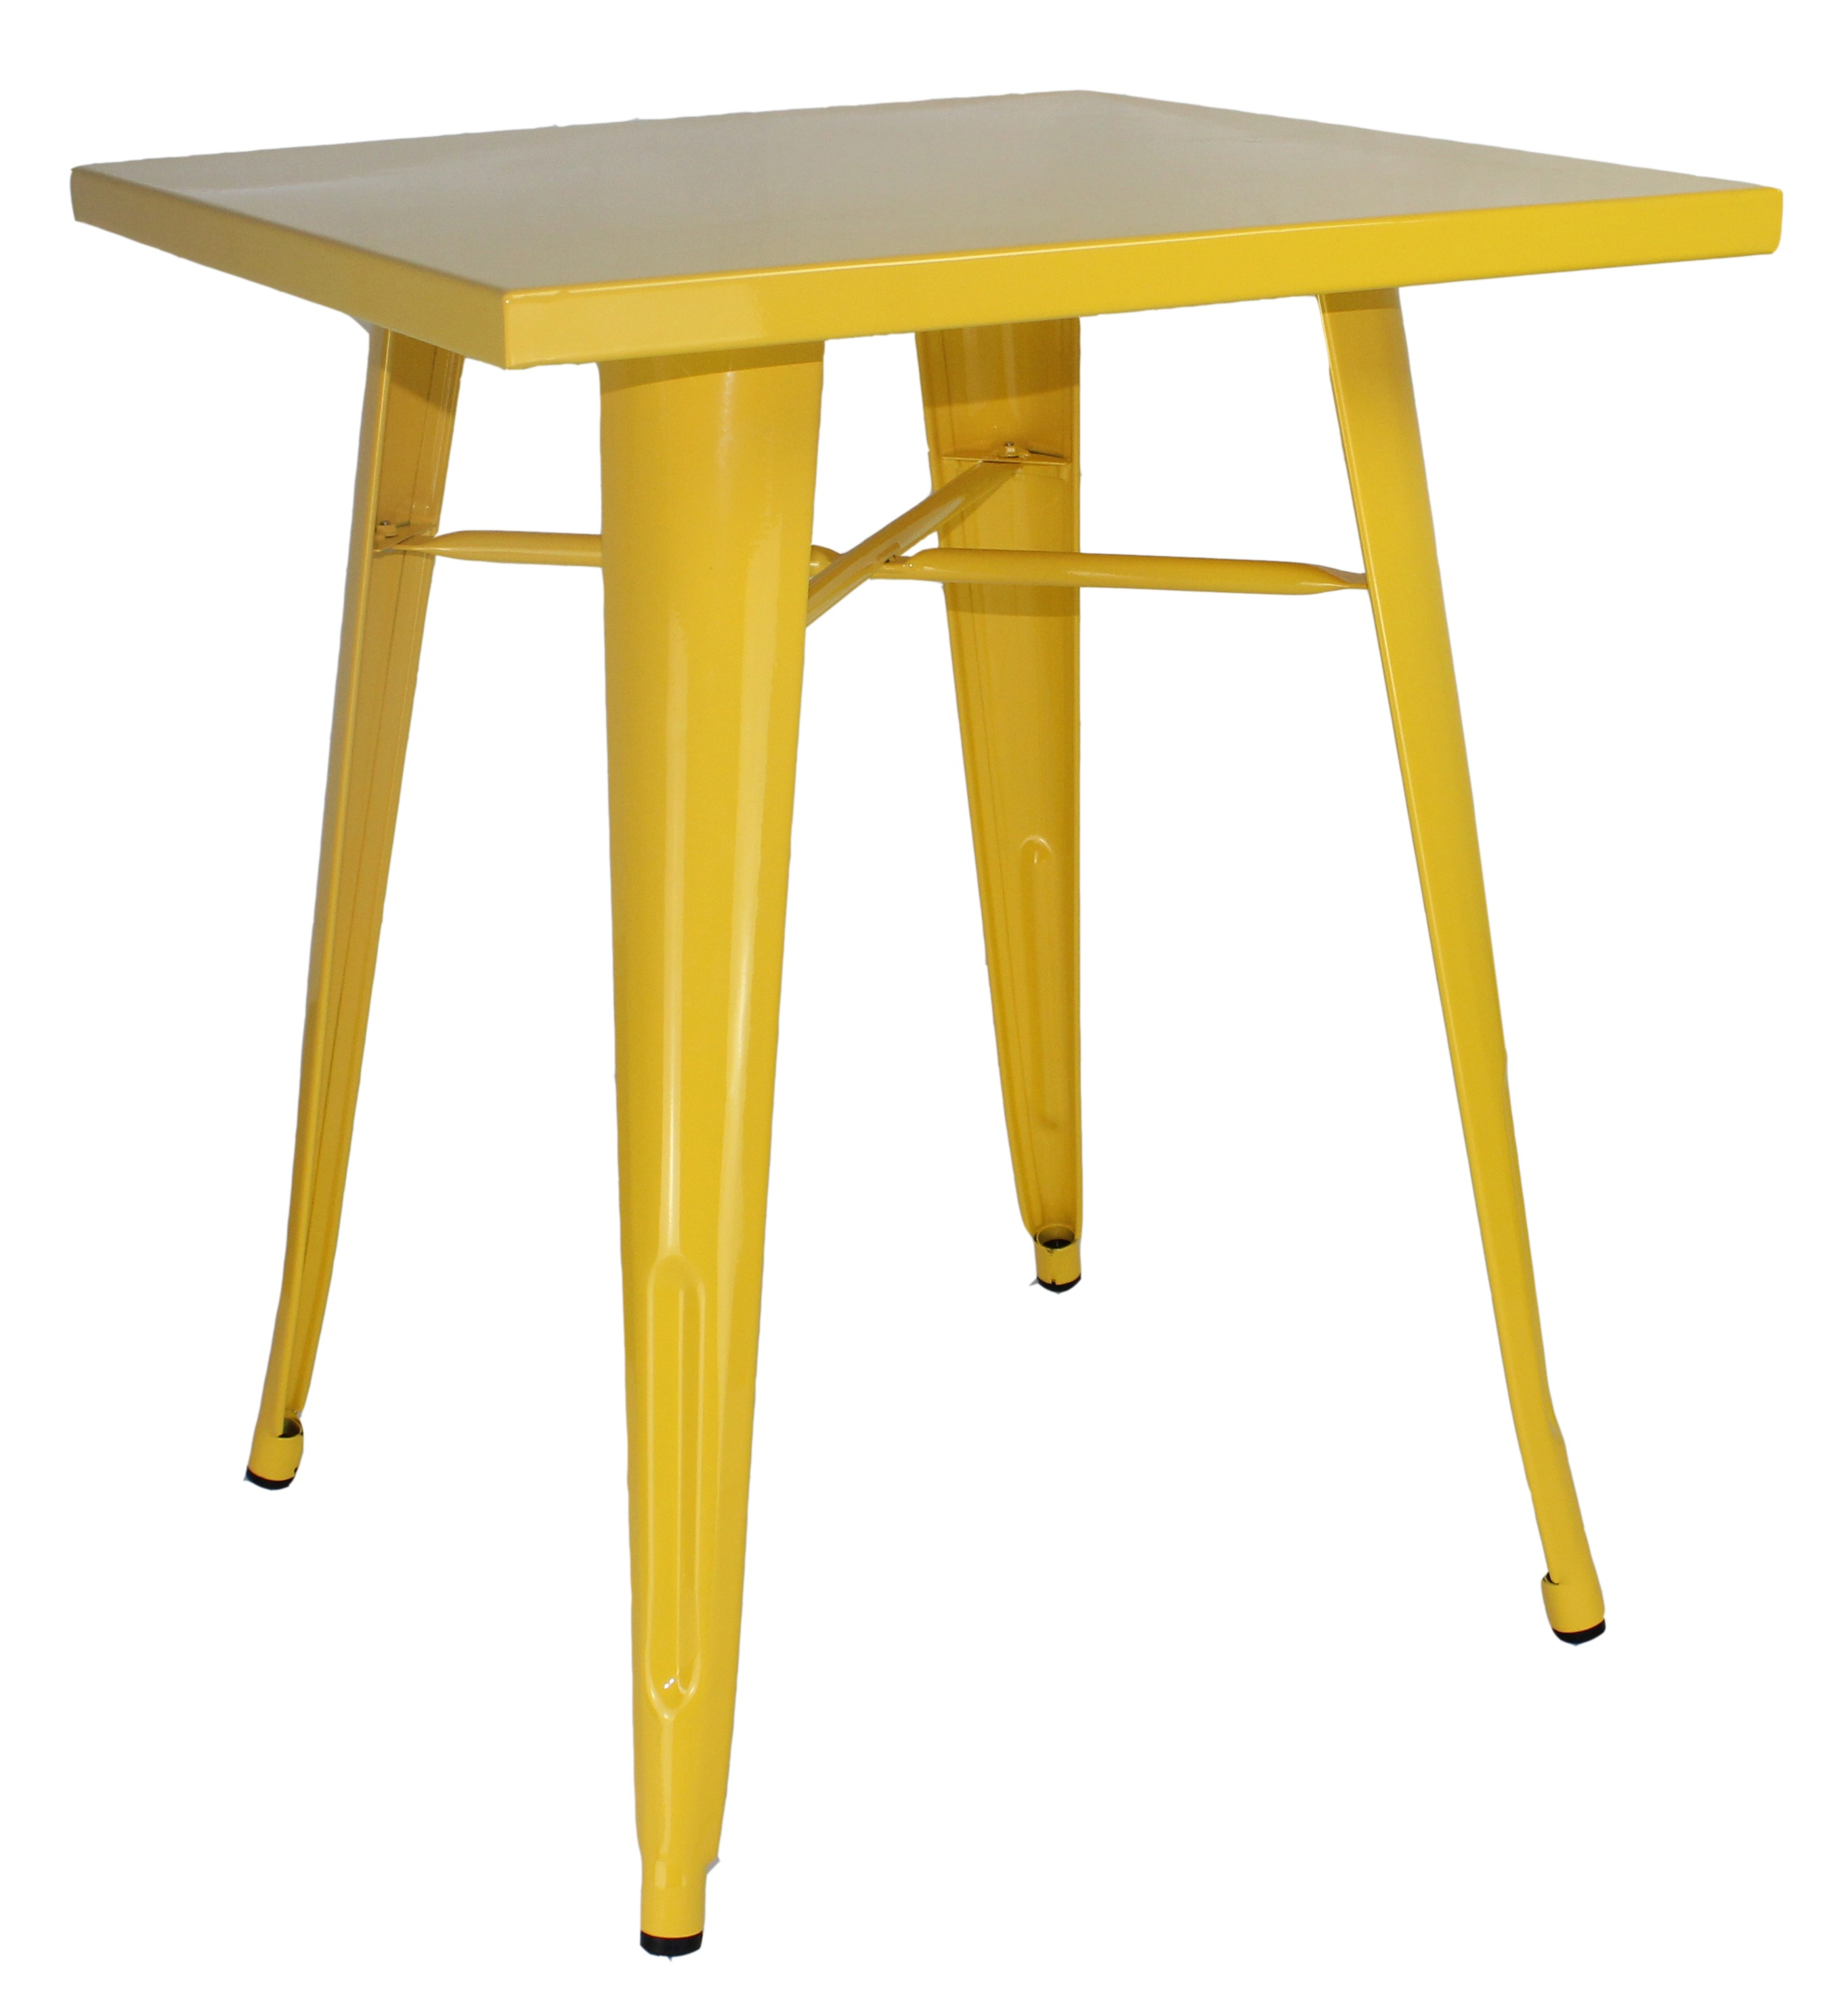 Metal Bistro TableMetal Table Supplier Metal Cafe Table : T1101 60yellow from www.decondesigns.com size 2729 x 2977 jpeg 499kB